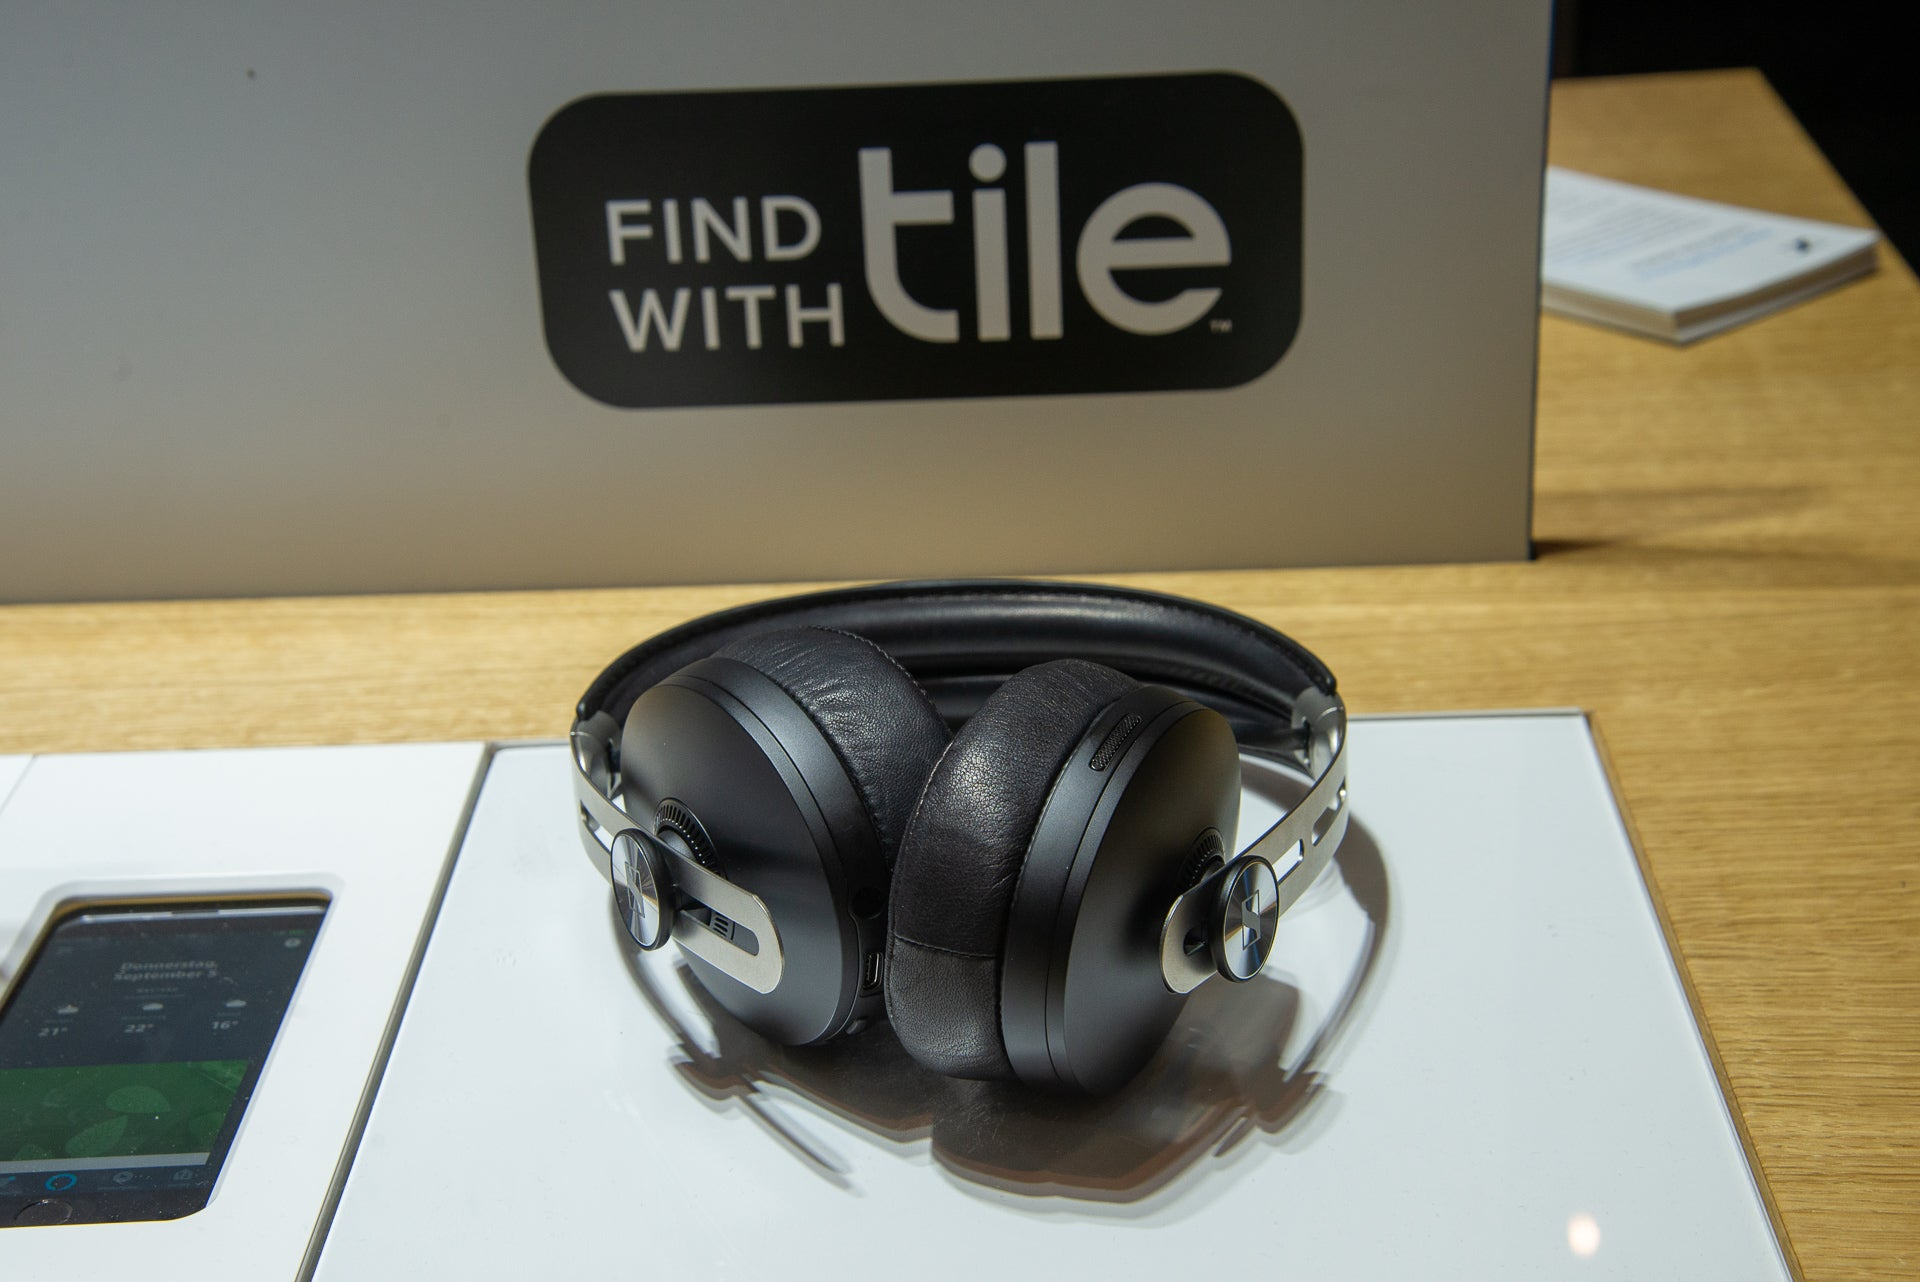 Find with Tile locates new Sennheiser and Skullcandy